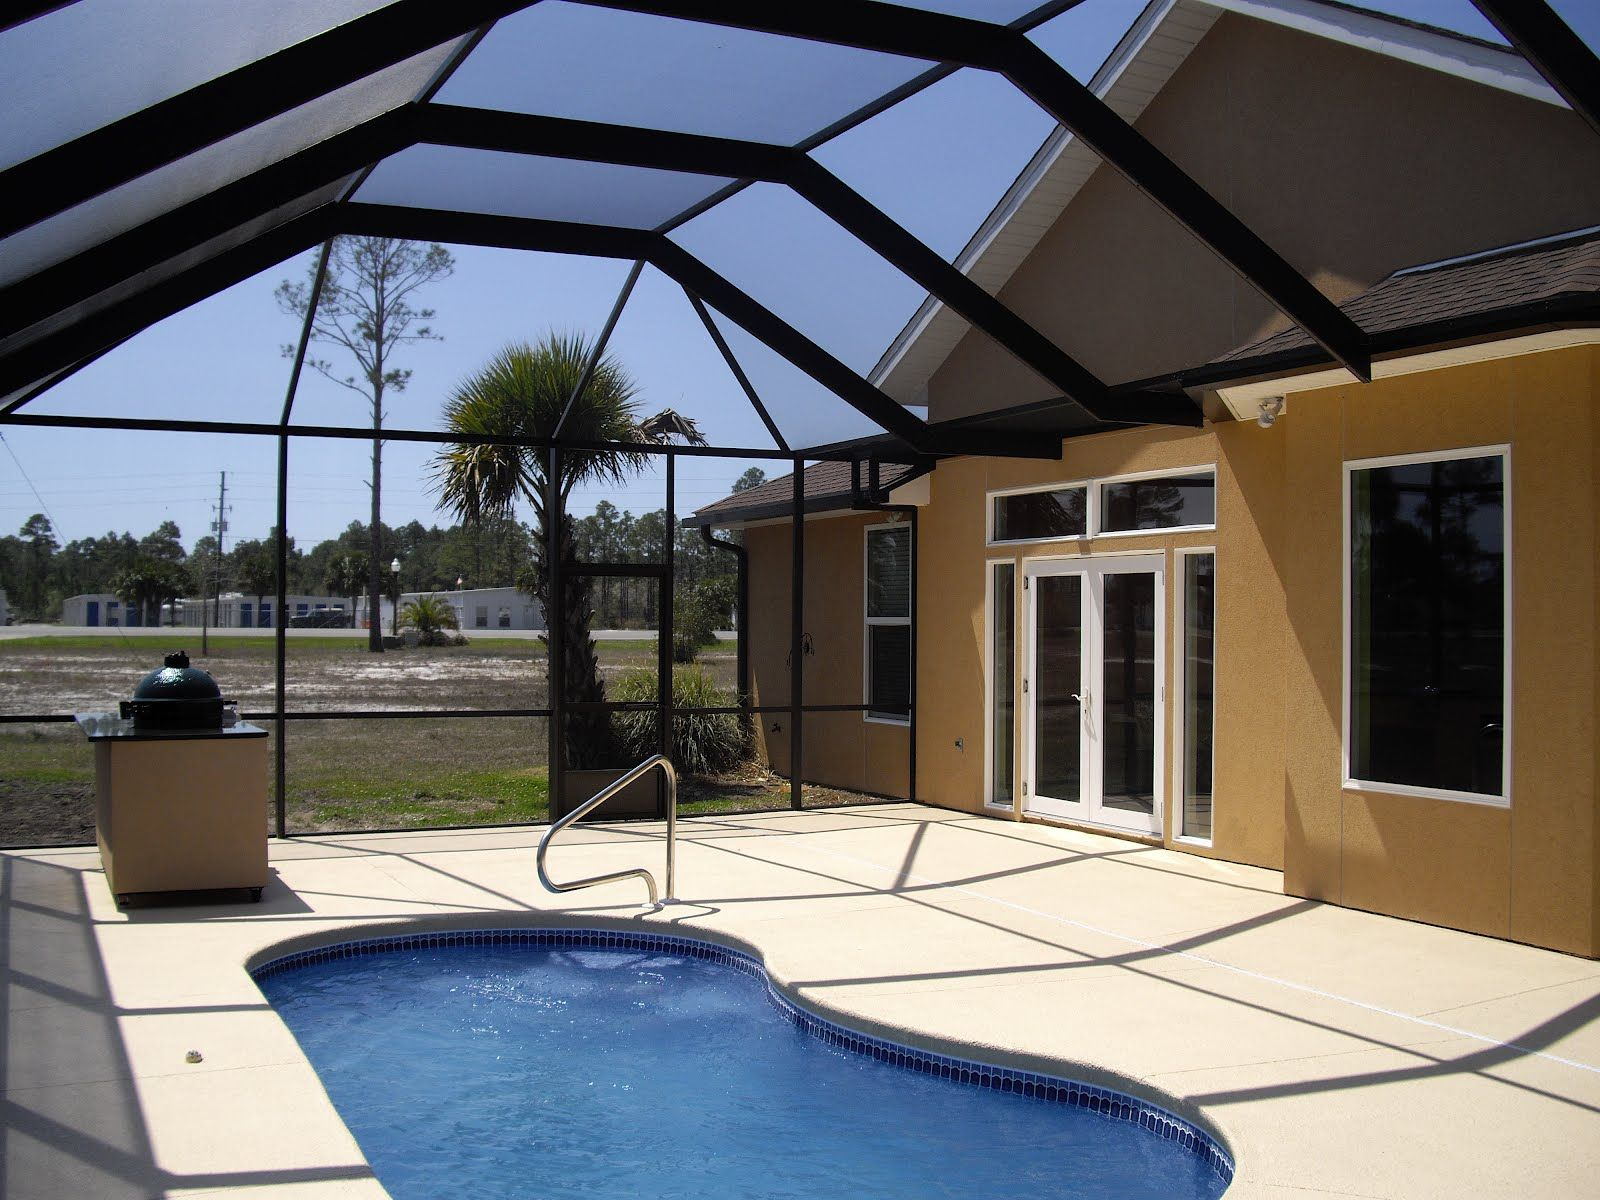 Mansard Roof Pool Enclosure Pool Enclosures Mansard Roof Outdoor Decor